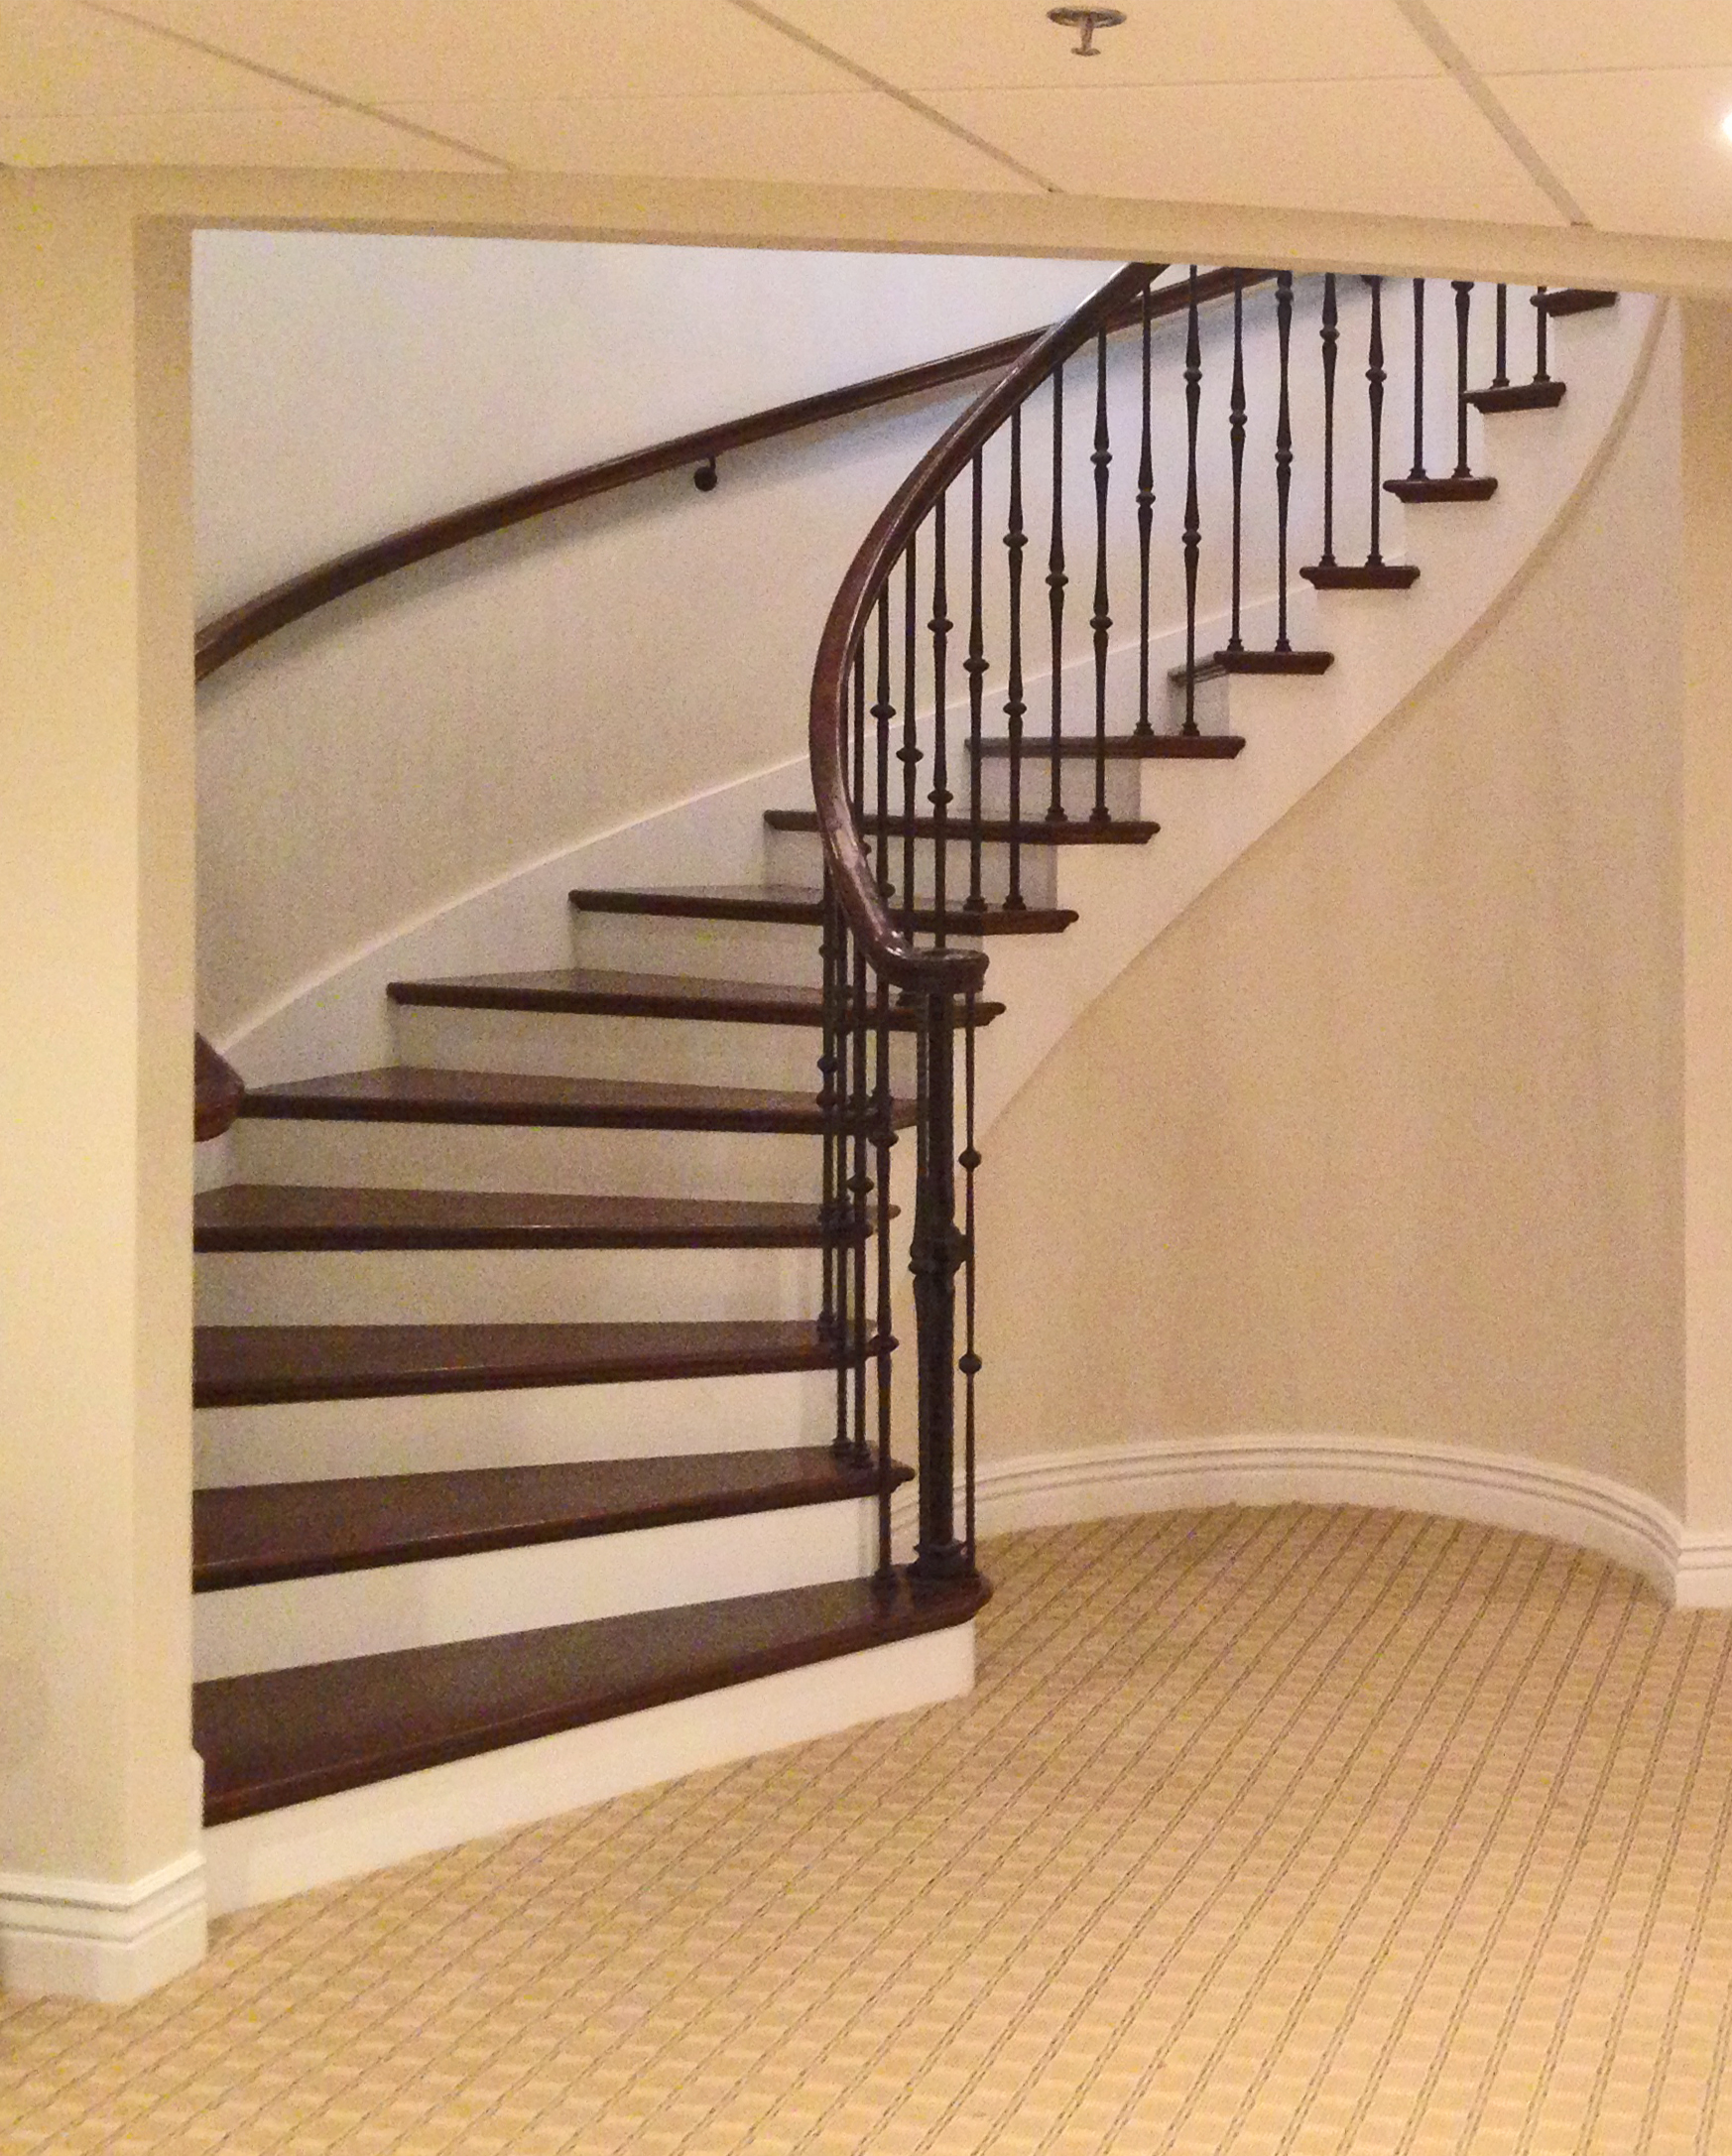 The Circular Stair A Viable Alternative To Straight Narrow Staircase Diagram Classic Stairs And Remodeling Simon Oswald Architecture